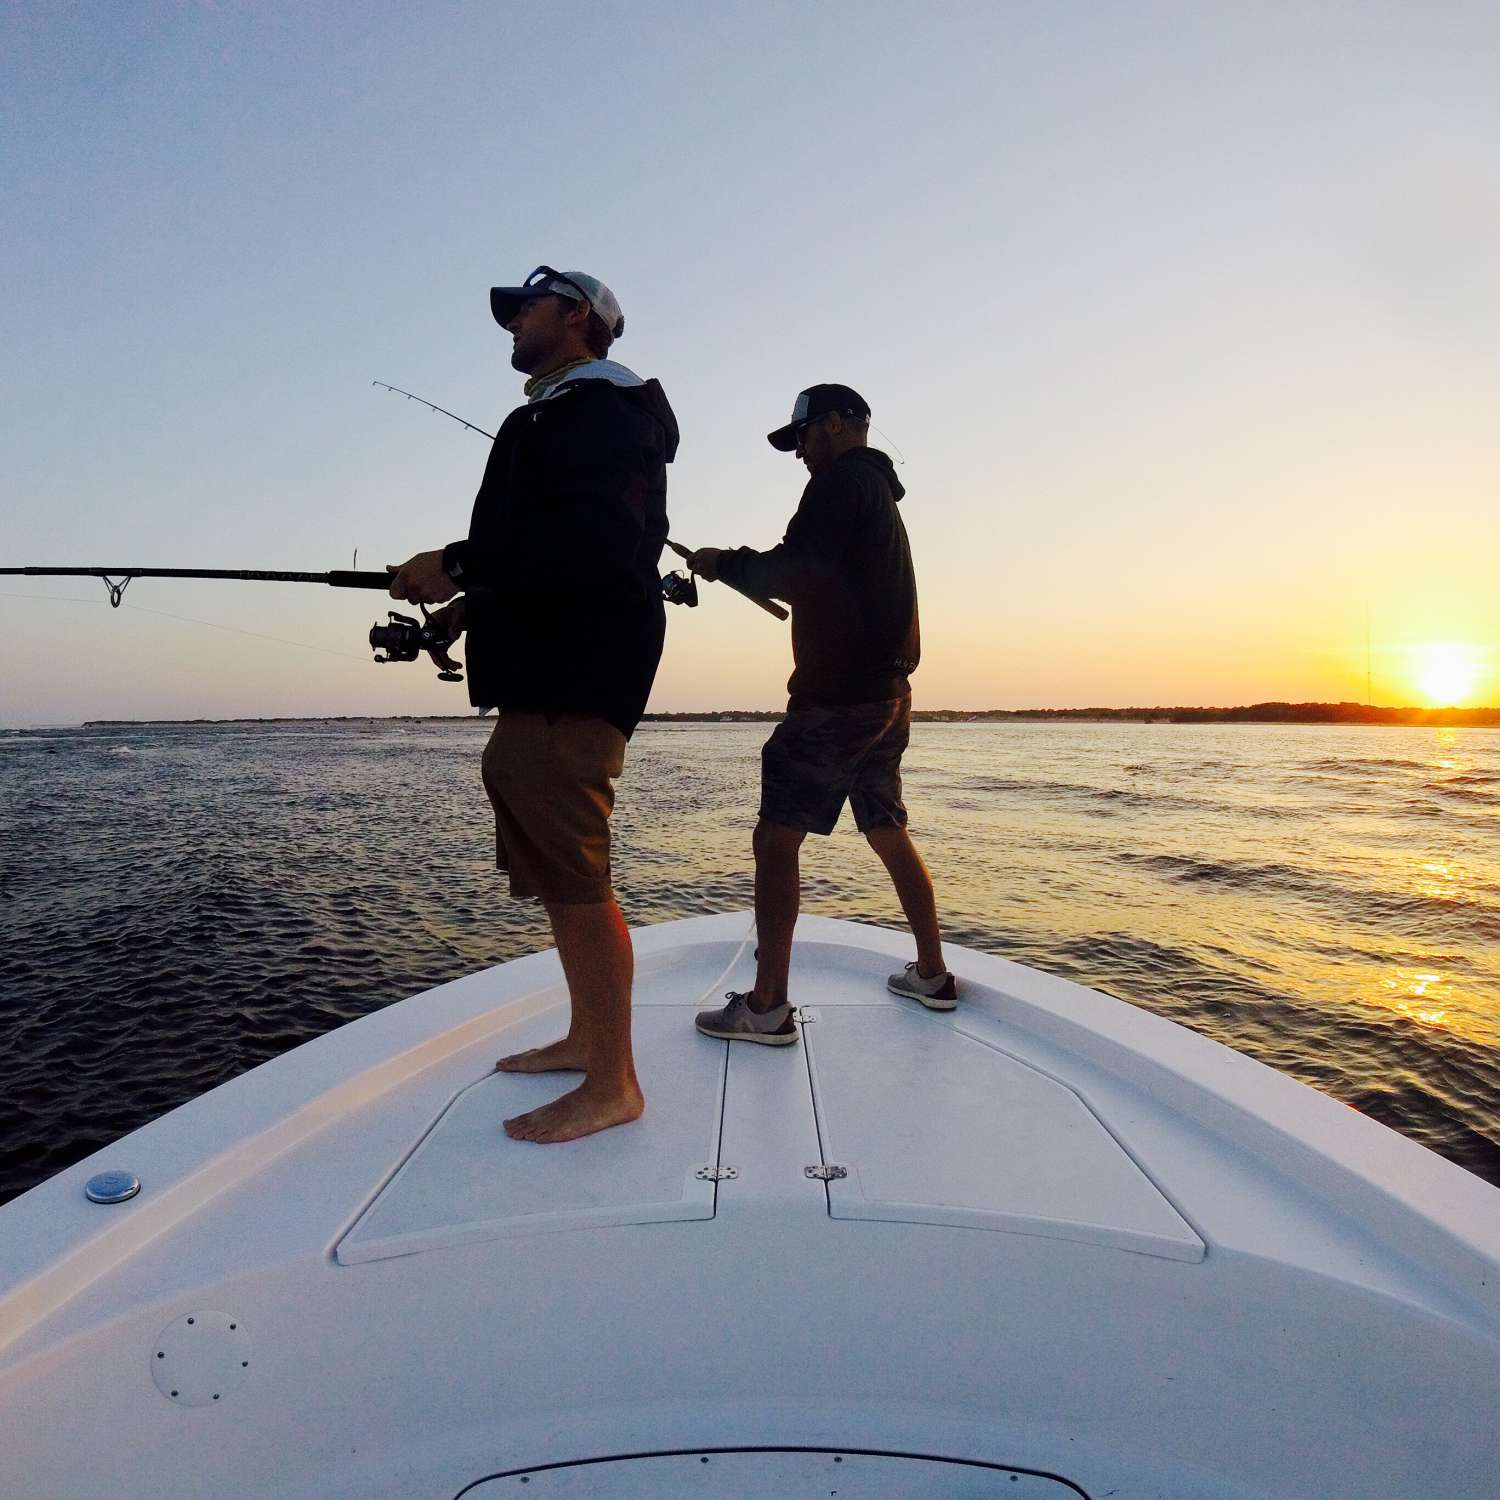 Title: Chasing The Sun - On board their Sportsman Island Bay 20 Bay Boat - Location: Wilmington, North Carolina. Participating in the Photo Contest #SportsmanJune2017